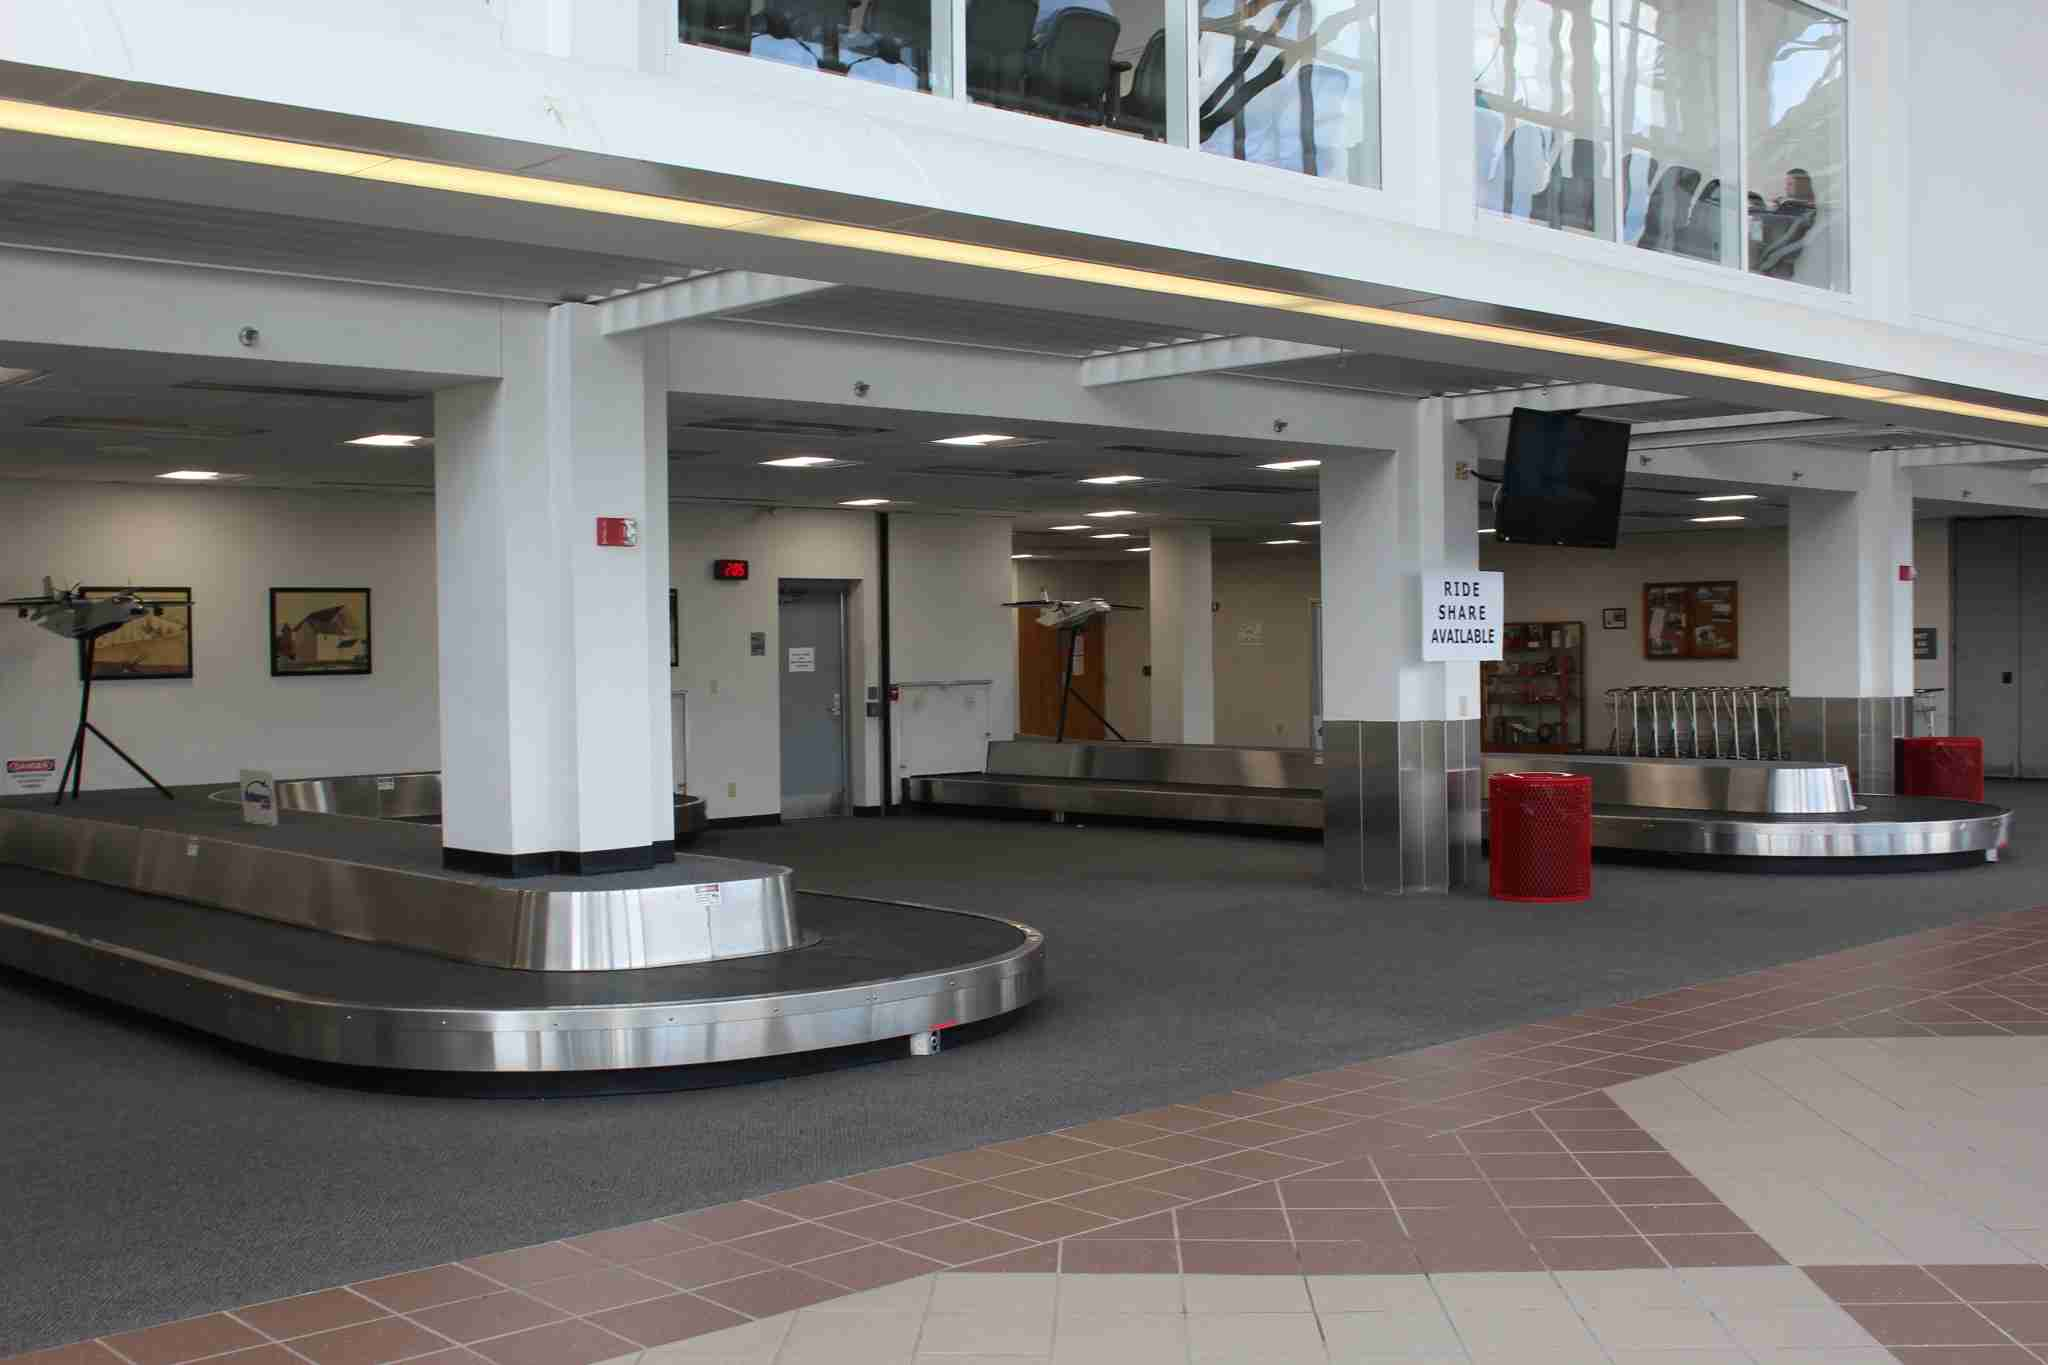 Baggage claim at MidAmerica Airport (Image by Max Prosperi/The Points Guy)